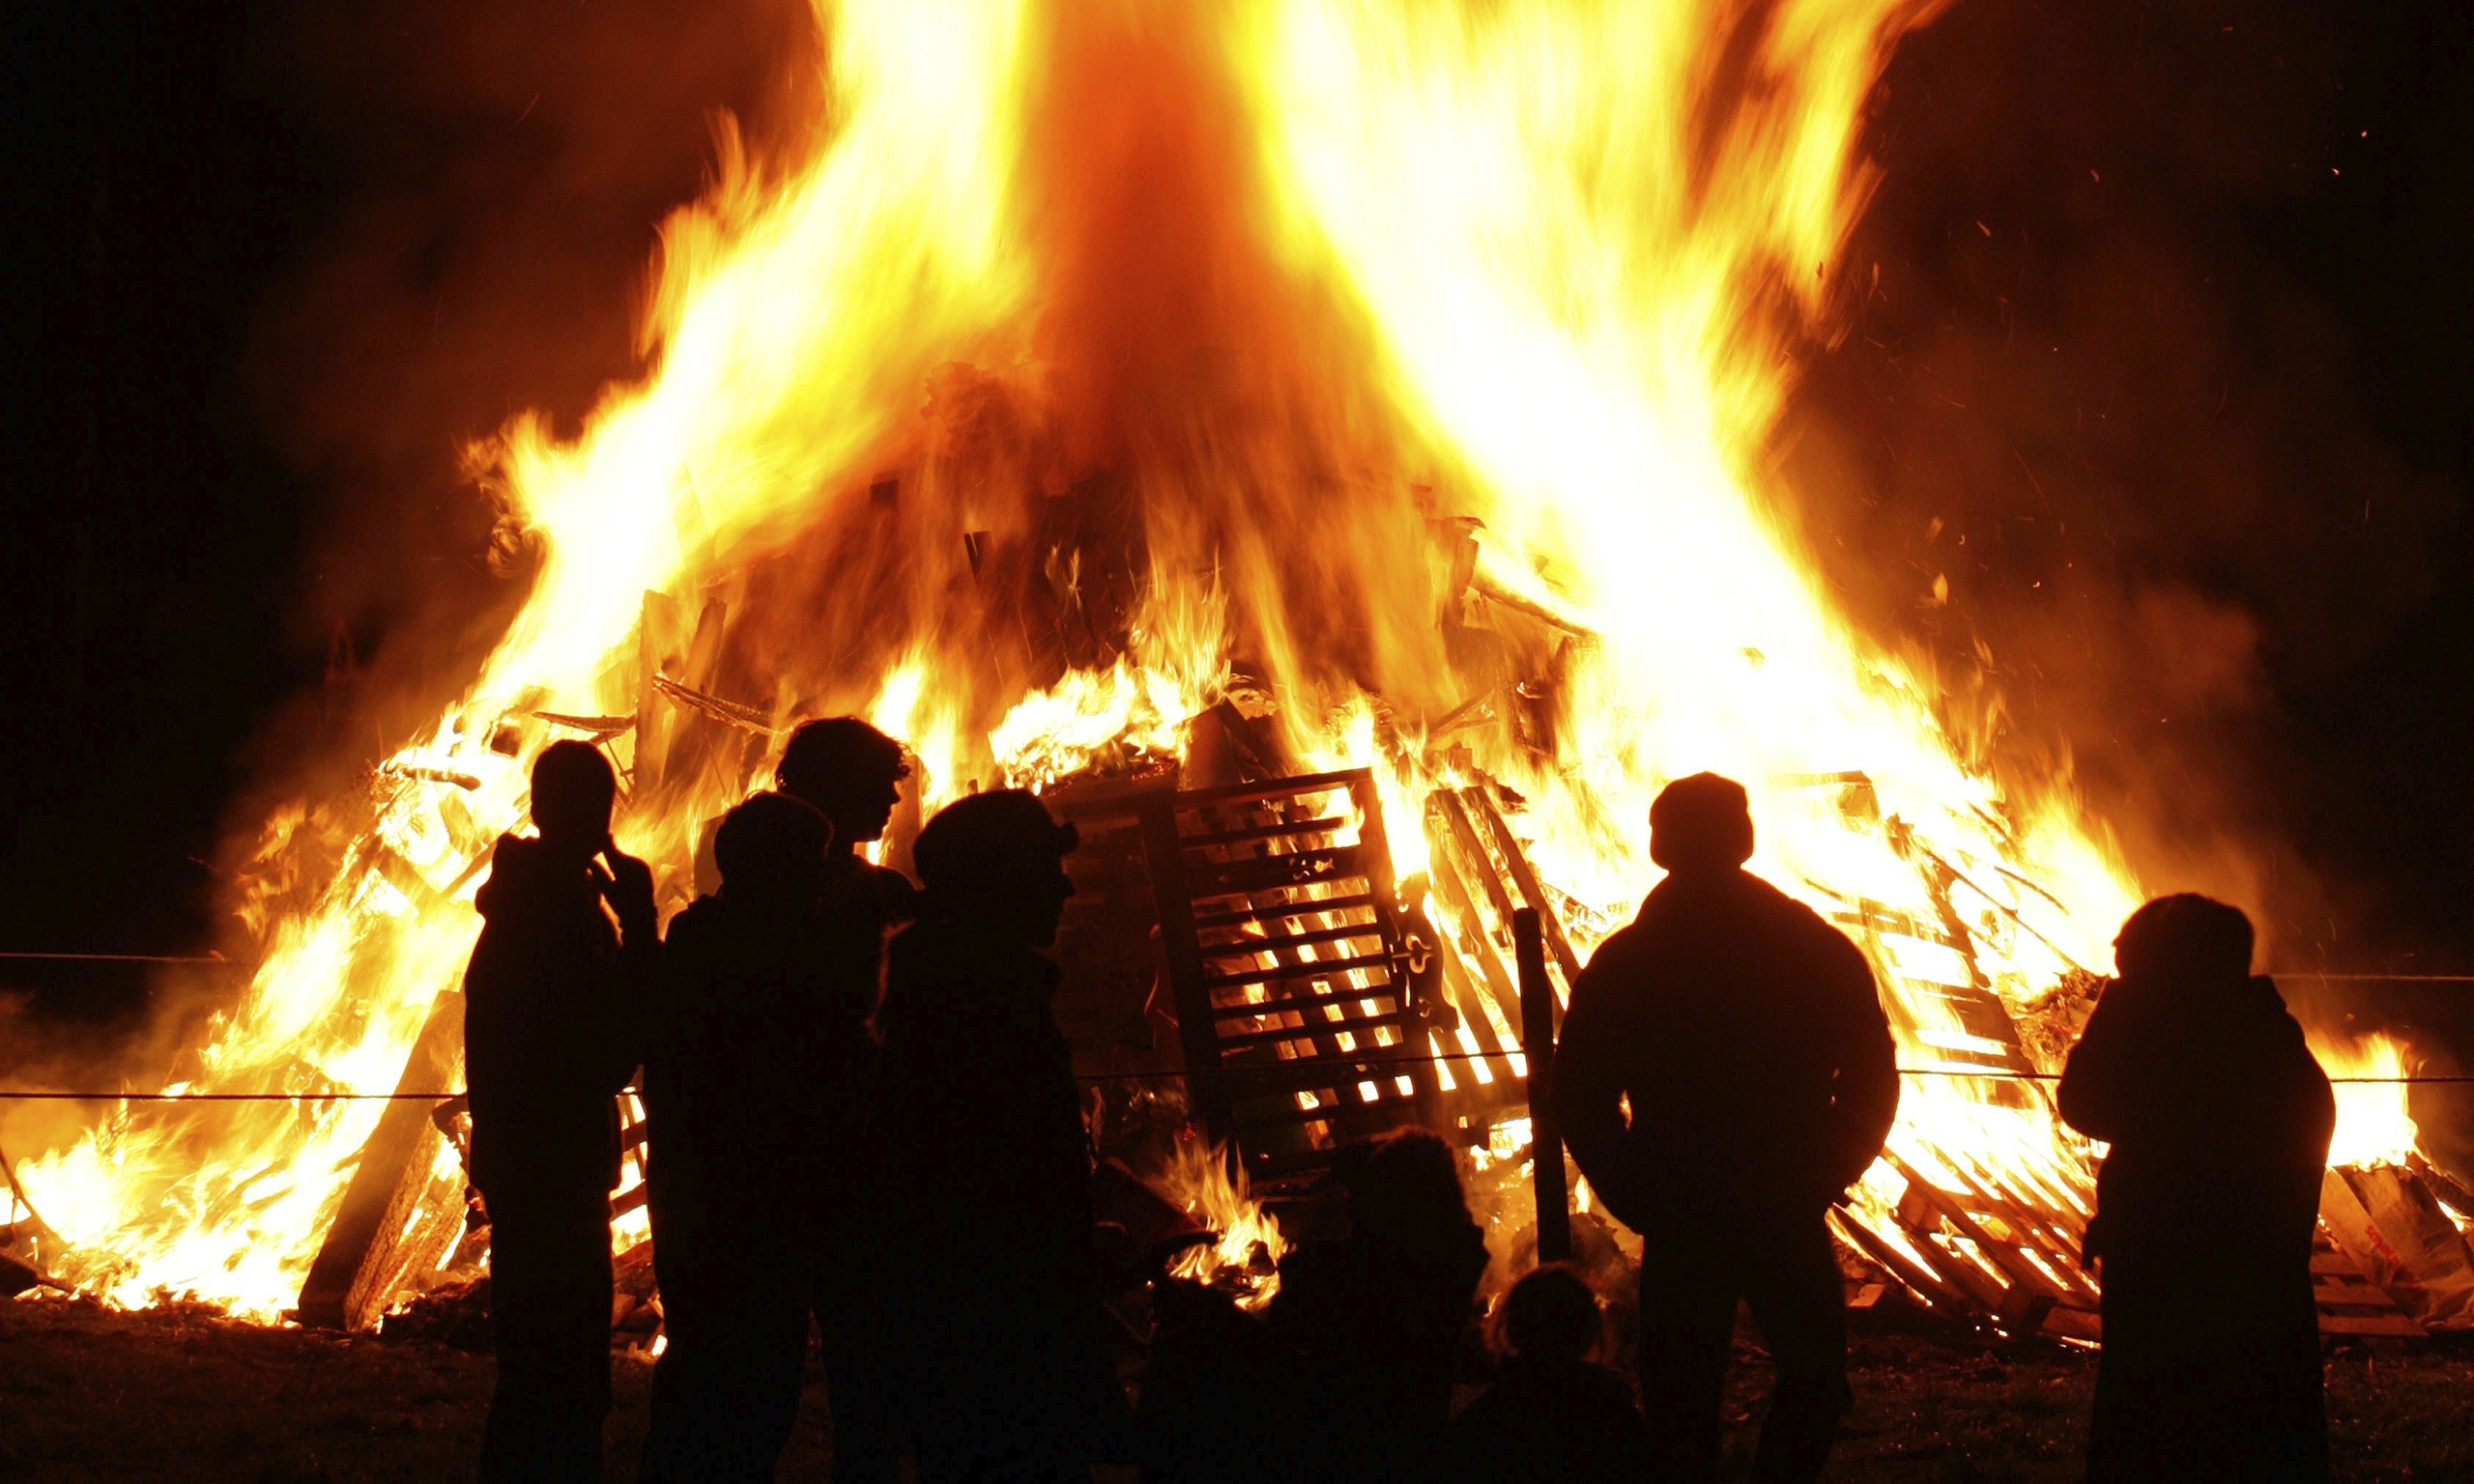 https://static.guim.co.uk/sys-images/Guardian/Pix/pictures/2013/10/30/1383147271363/Bonfire-night-fire-013.jpg